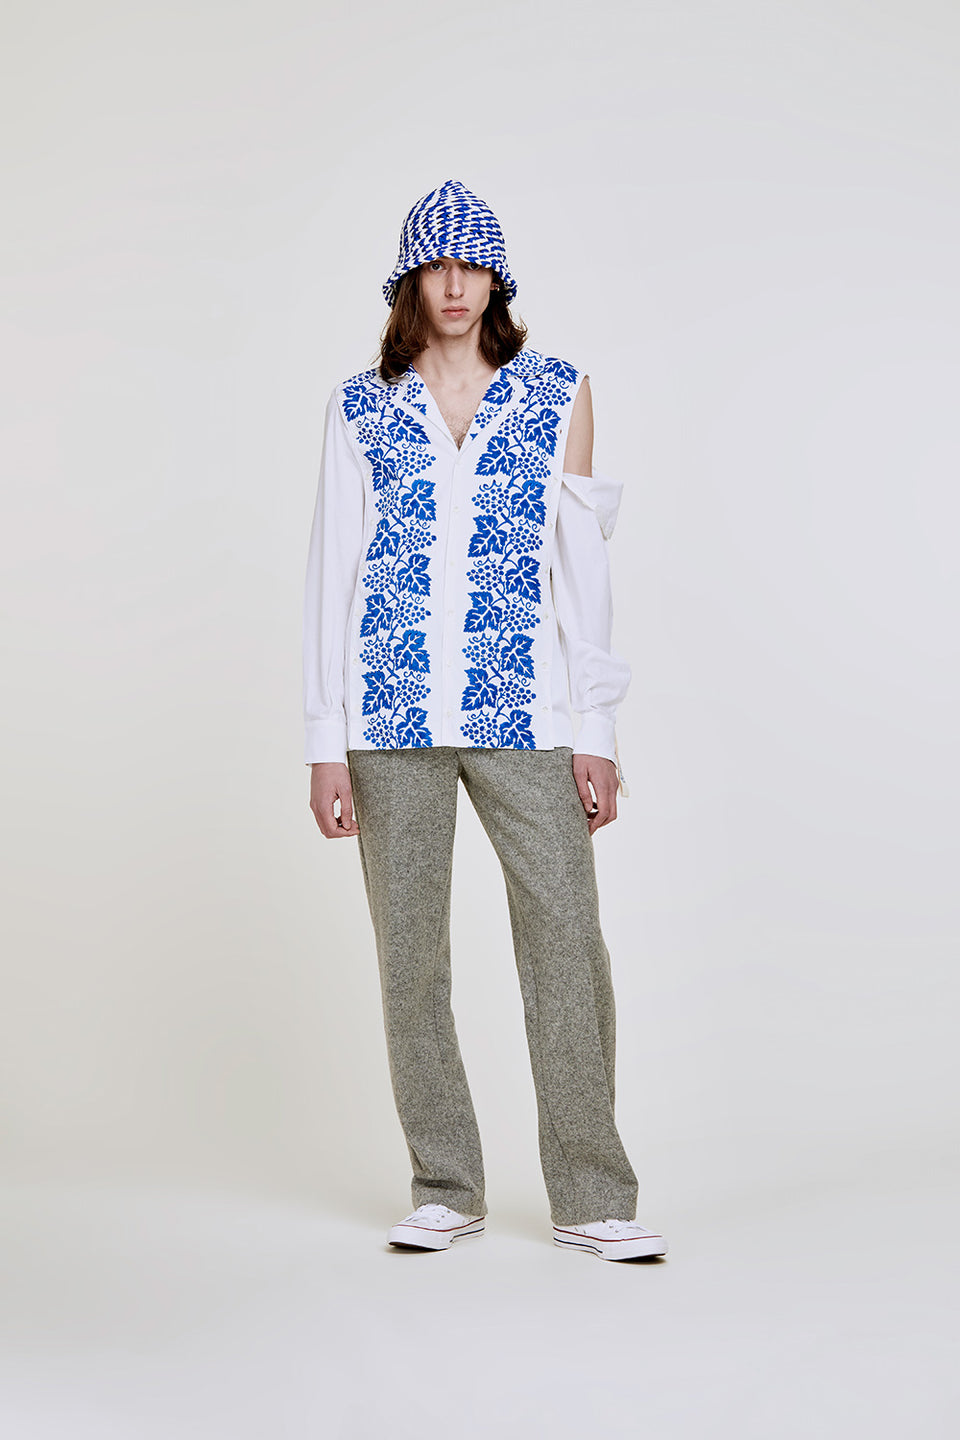 La Romagnola Multi-Botton Shirt